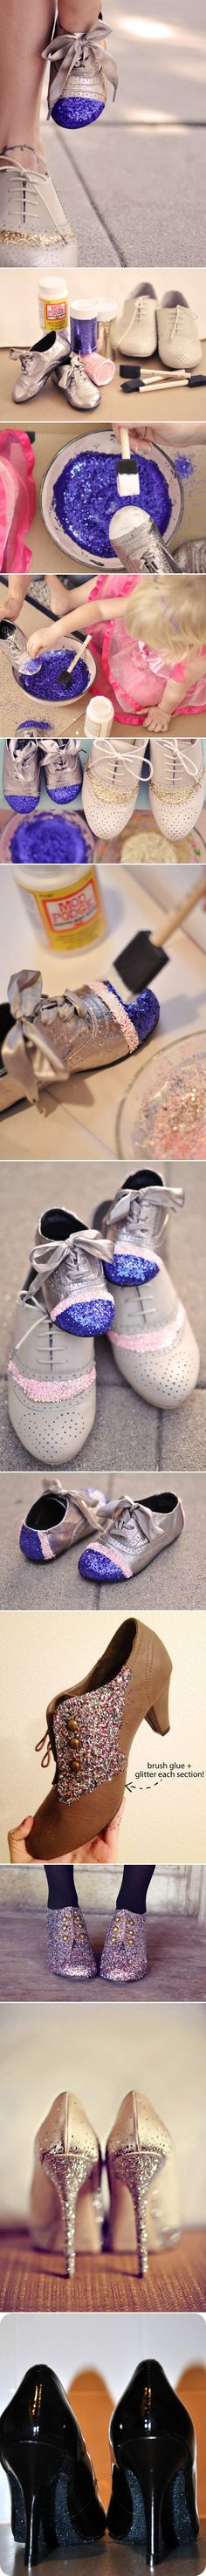 Sweet Shoes ♥